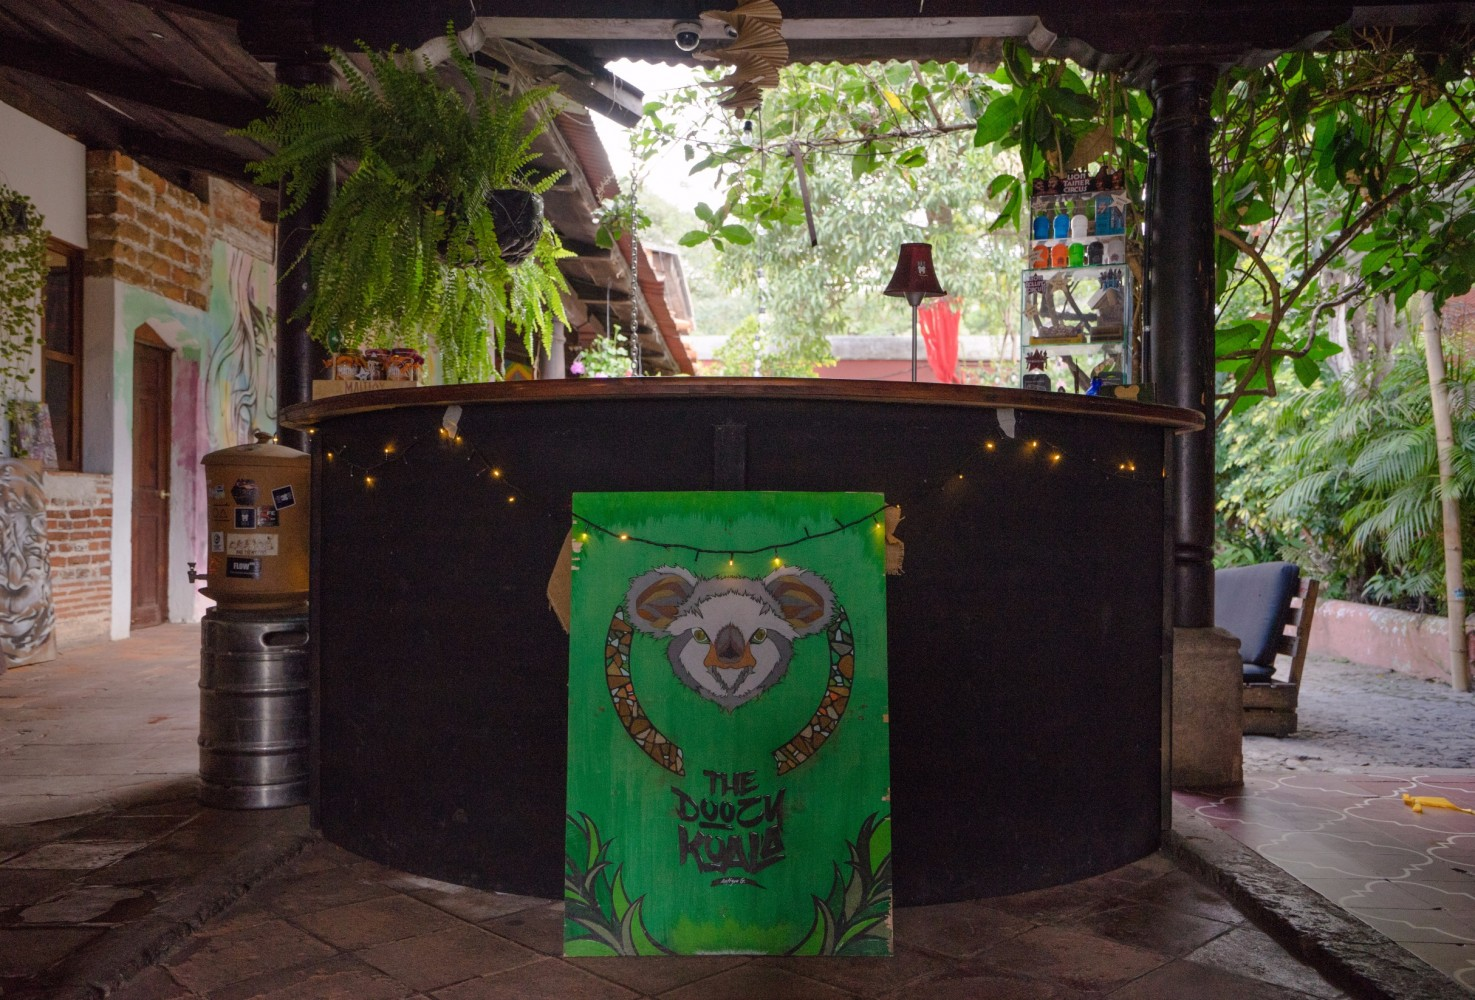 Arte Verde Volta Redonda The Doozy Koala Hostel Antigua Guatemala Best Price Guarantee